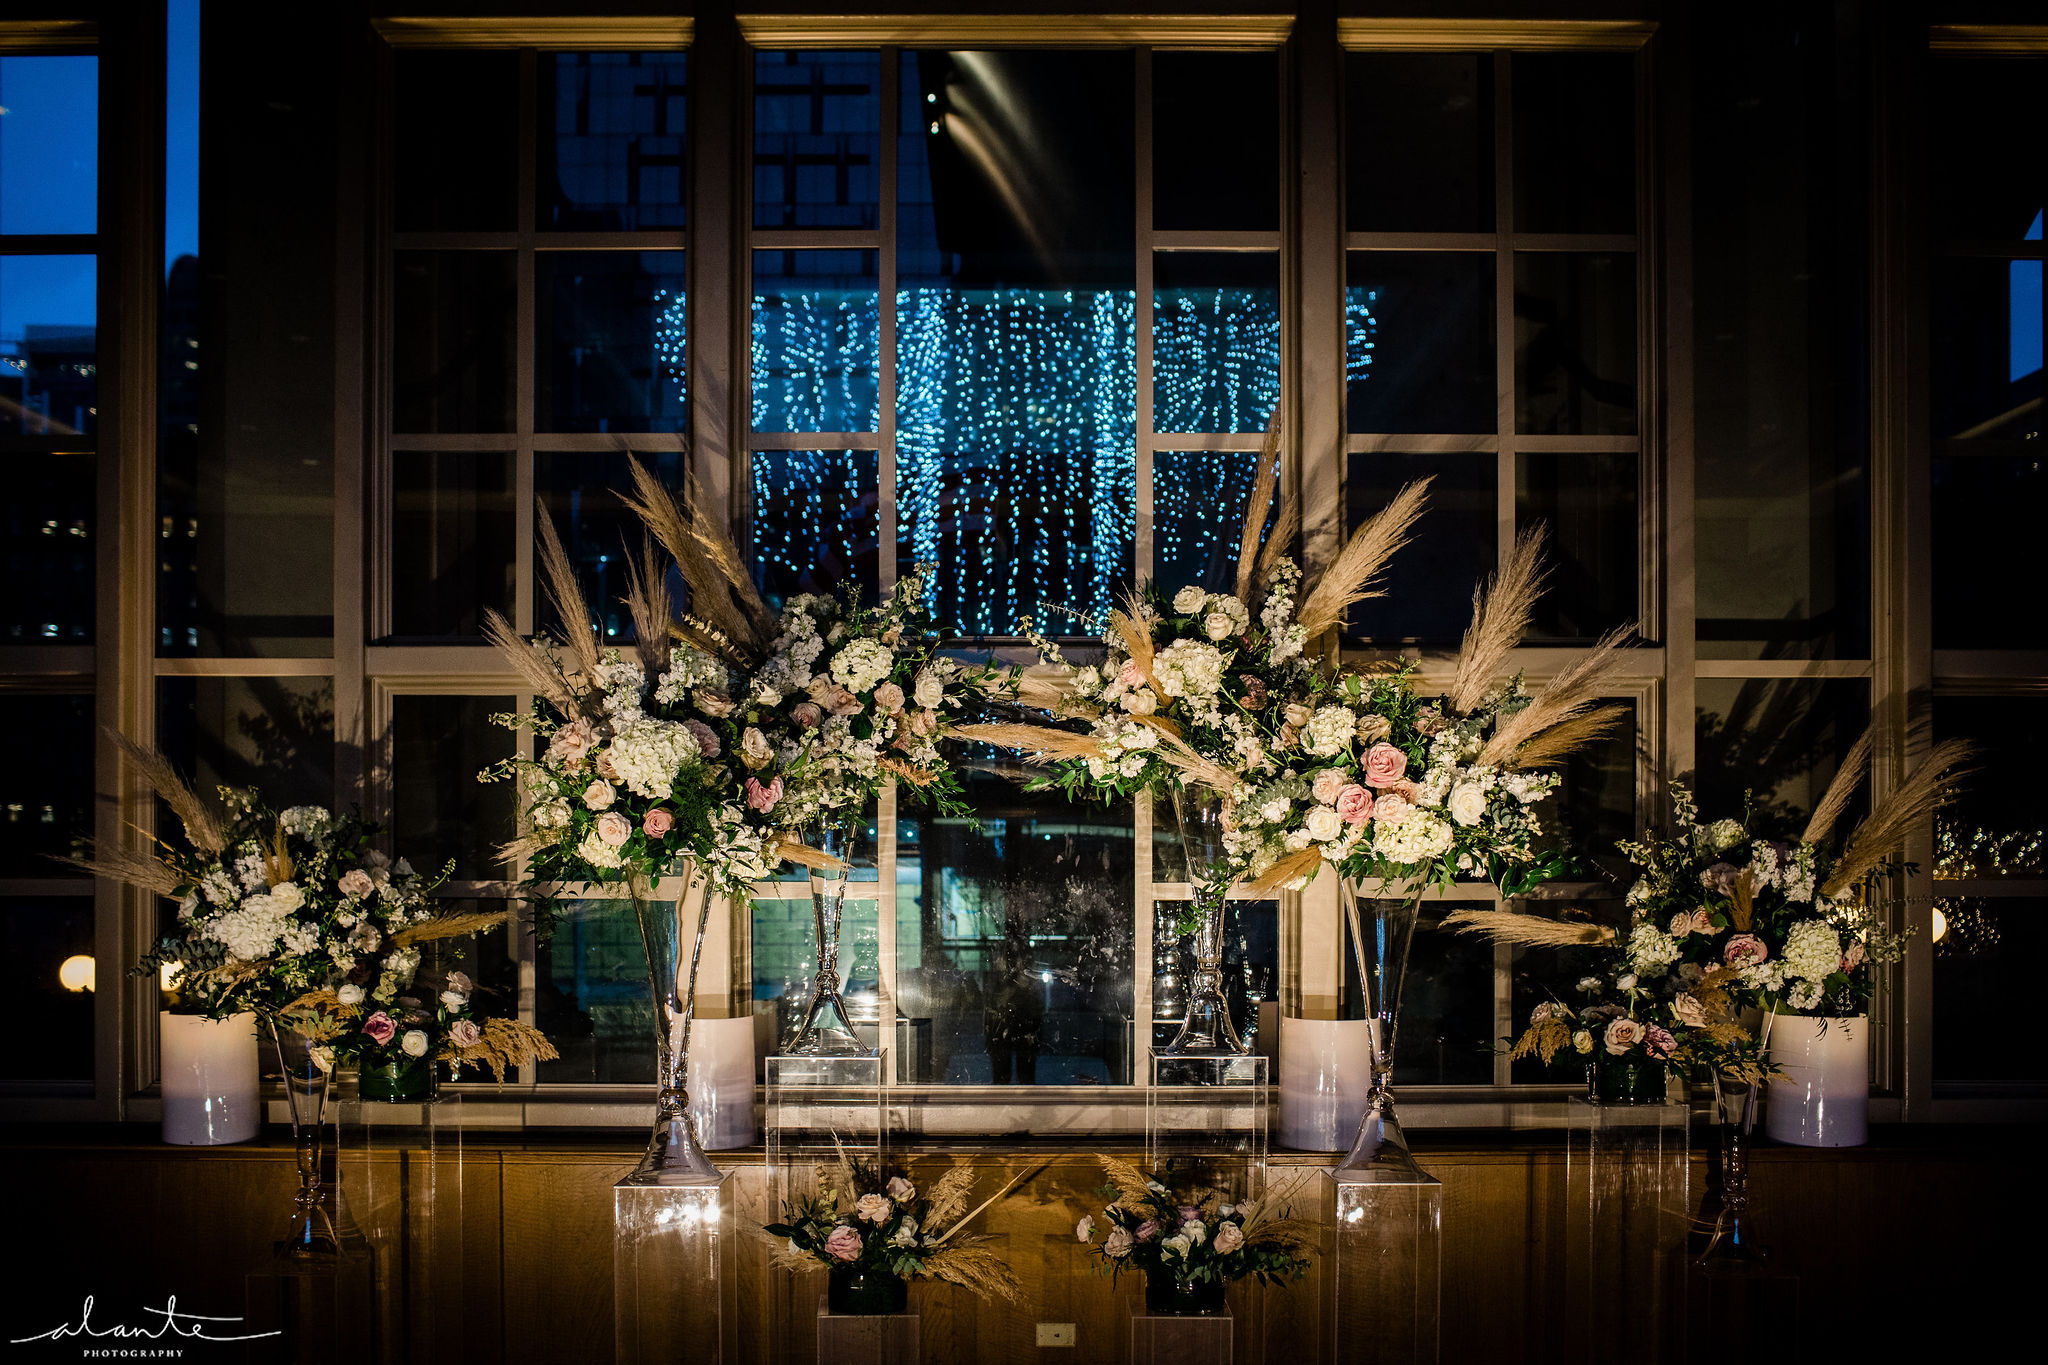 New Years Eve wedding ceremony alter floral arrangements featuring pampas grasses and white and blush flowers | Flora Nova Design